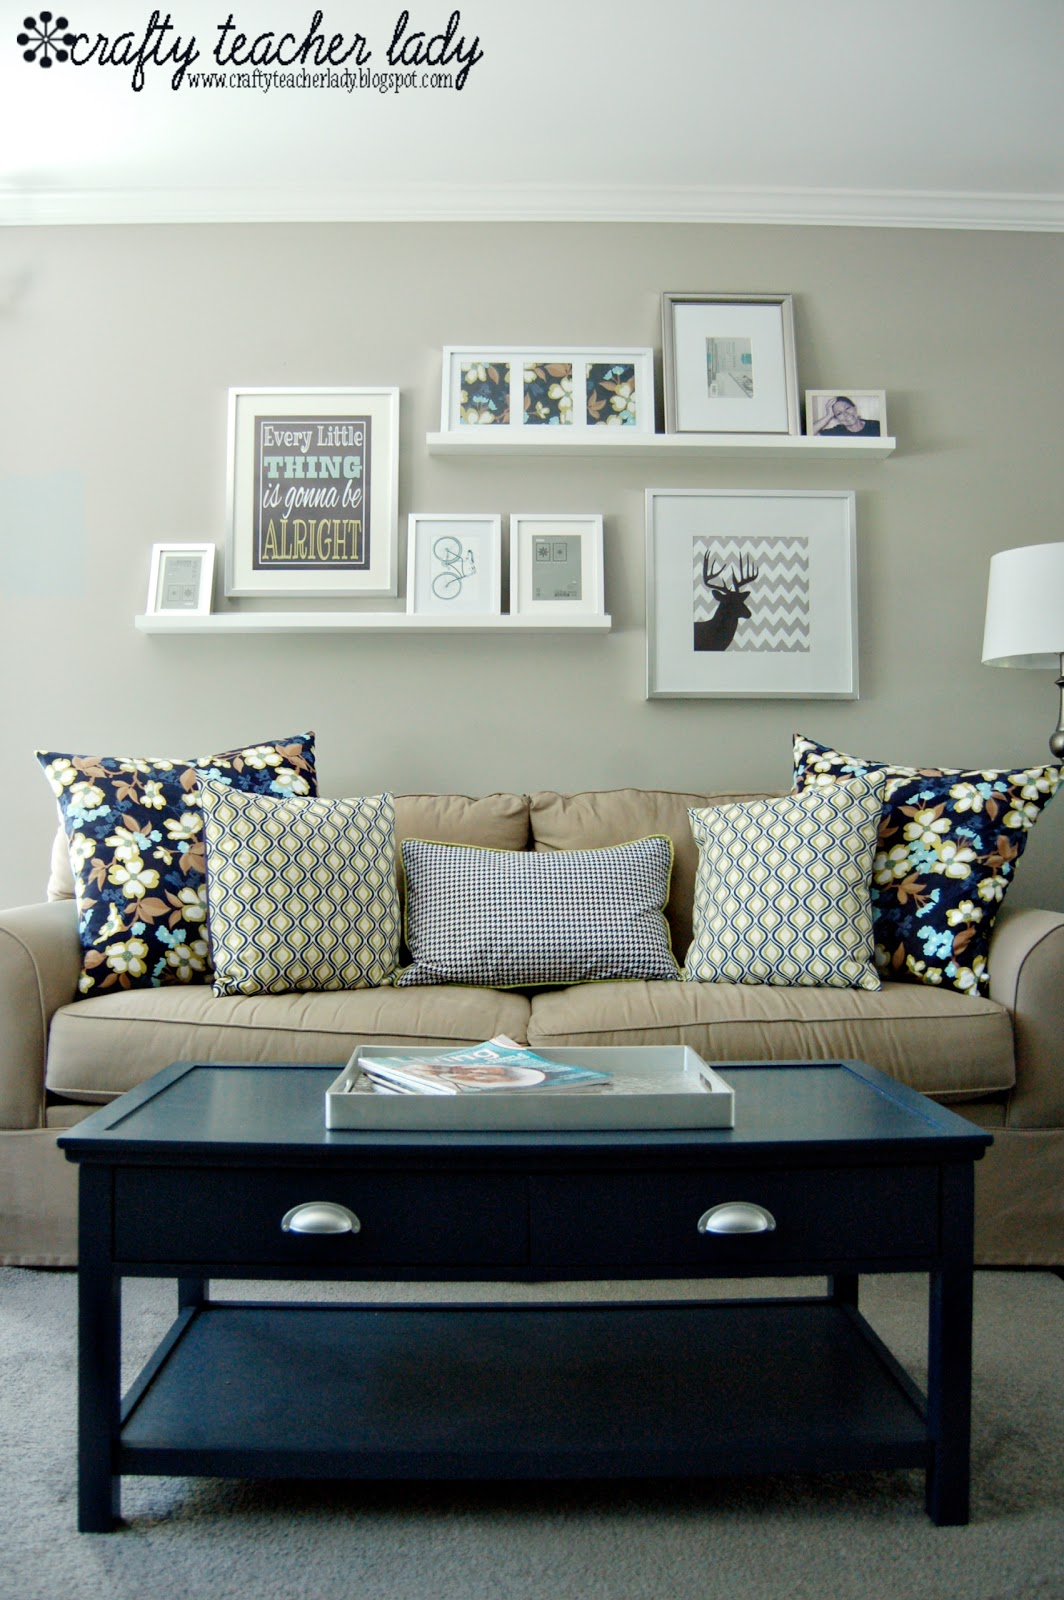 Wall Decor For Over Couch : Crafty teacher lady coffee table makeover